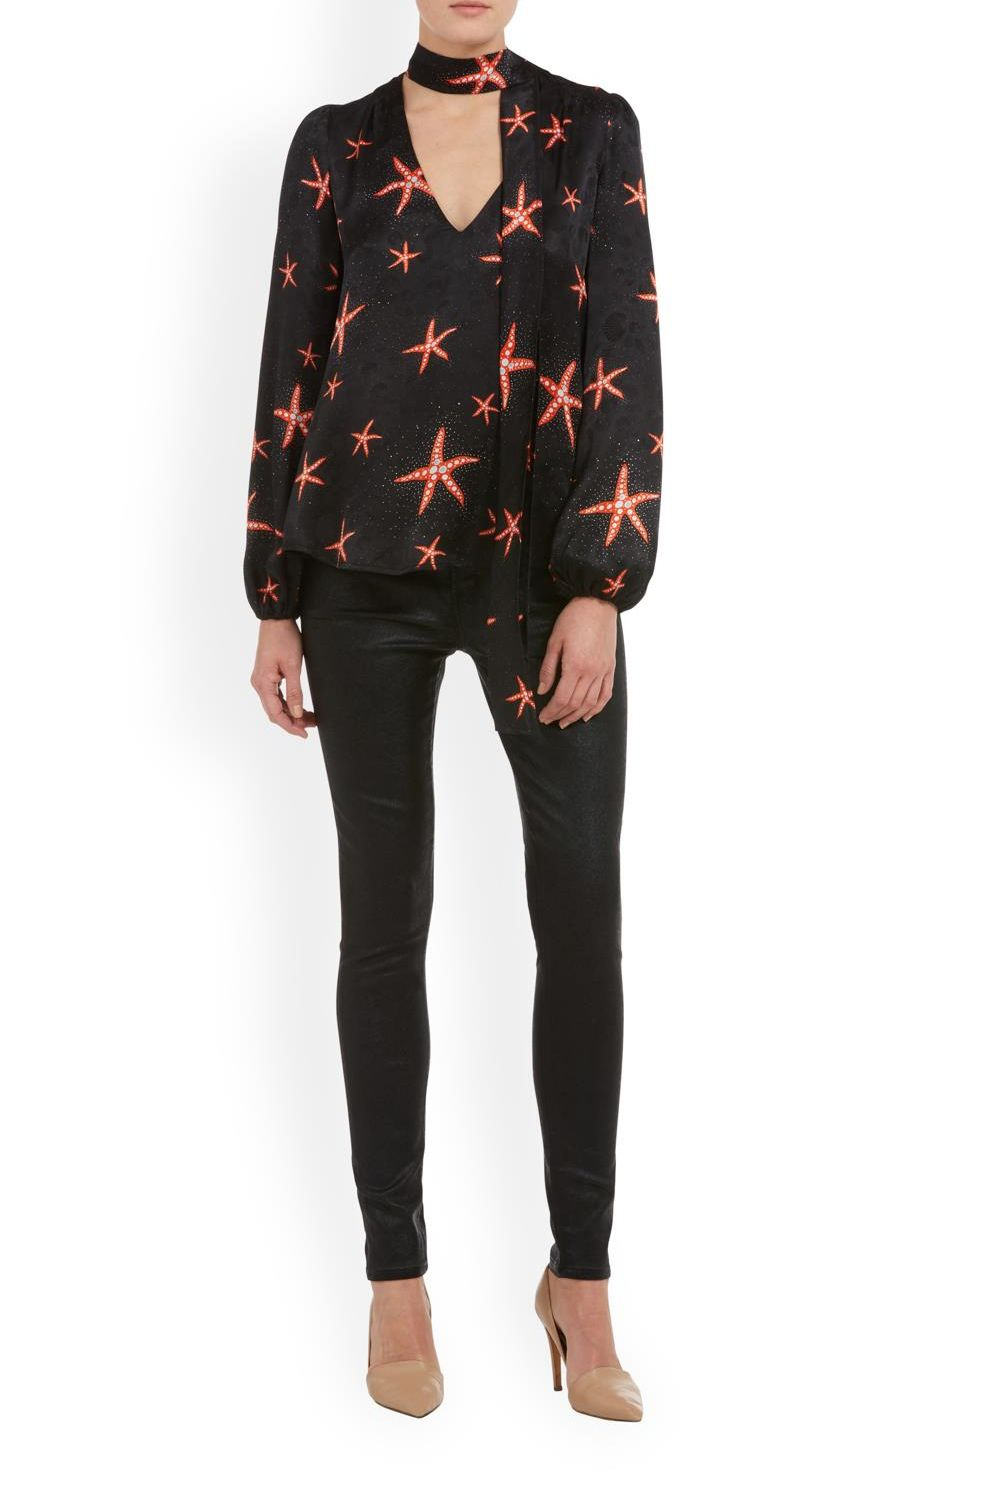 RIXO London Moss – Starfish Black Coral 2